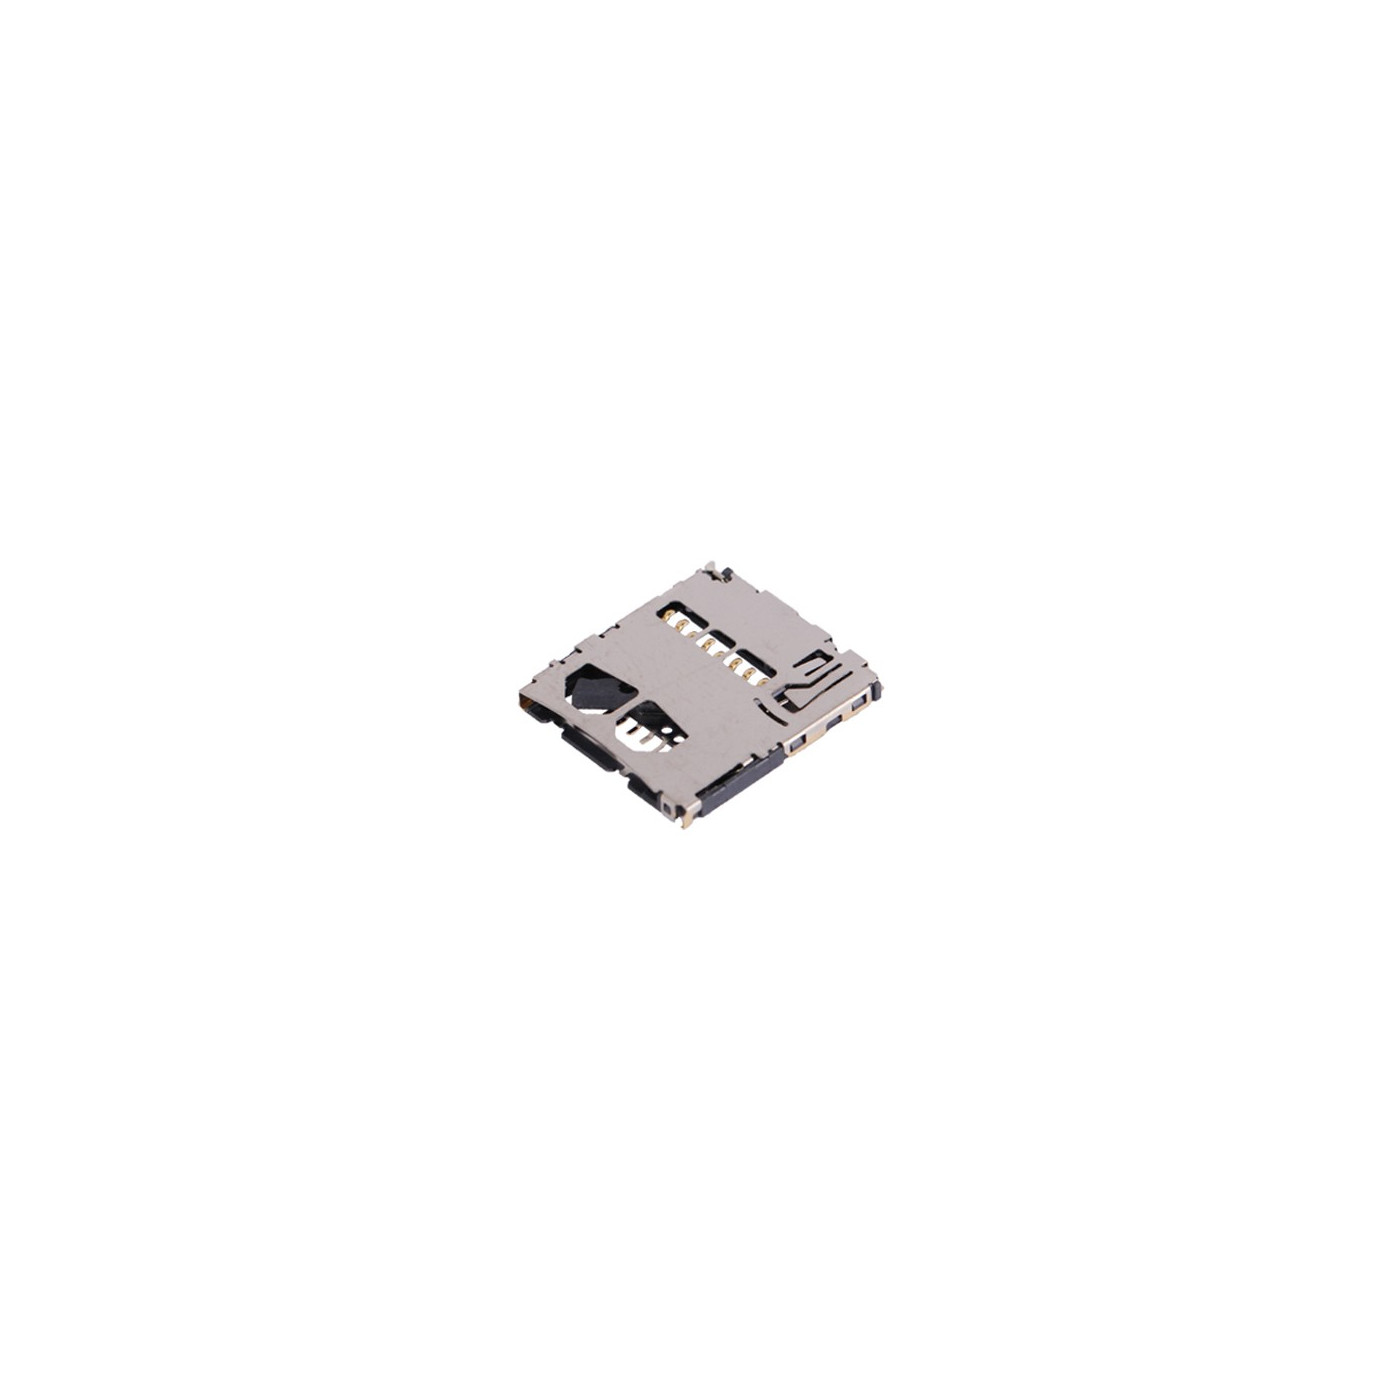 Player card slot sim card for Samsung Galaxy S i9000